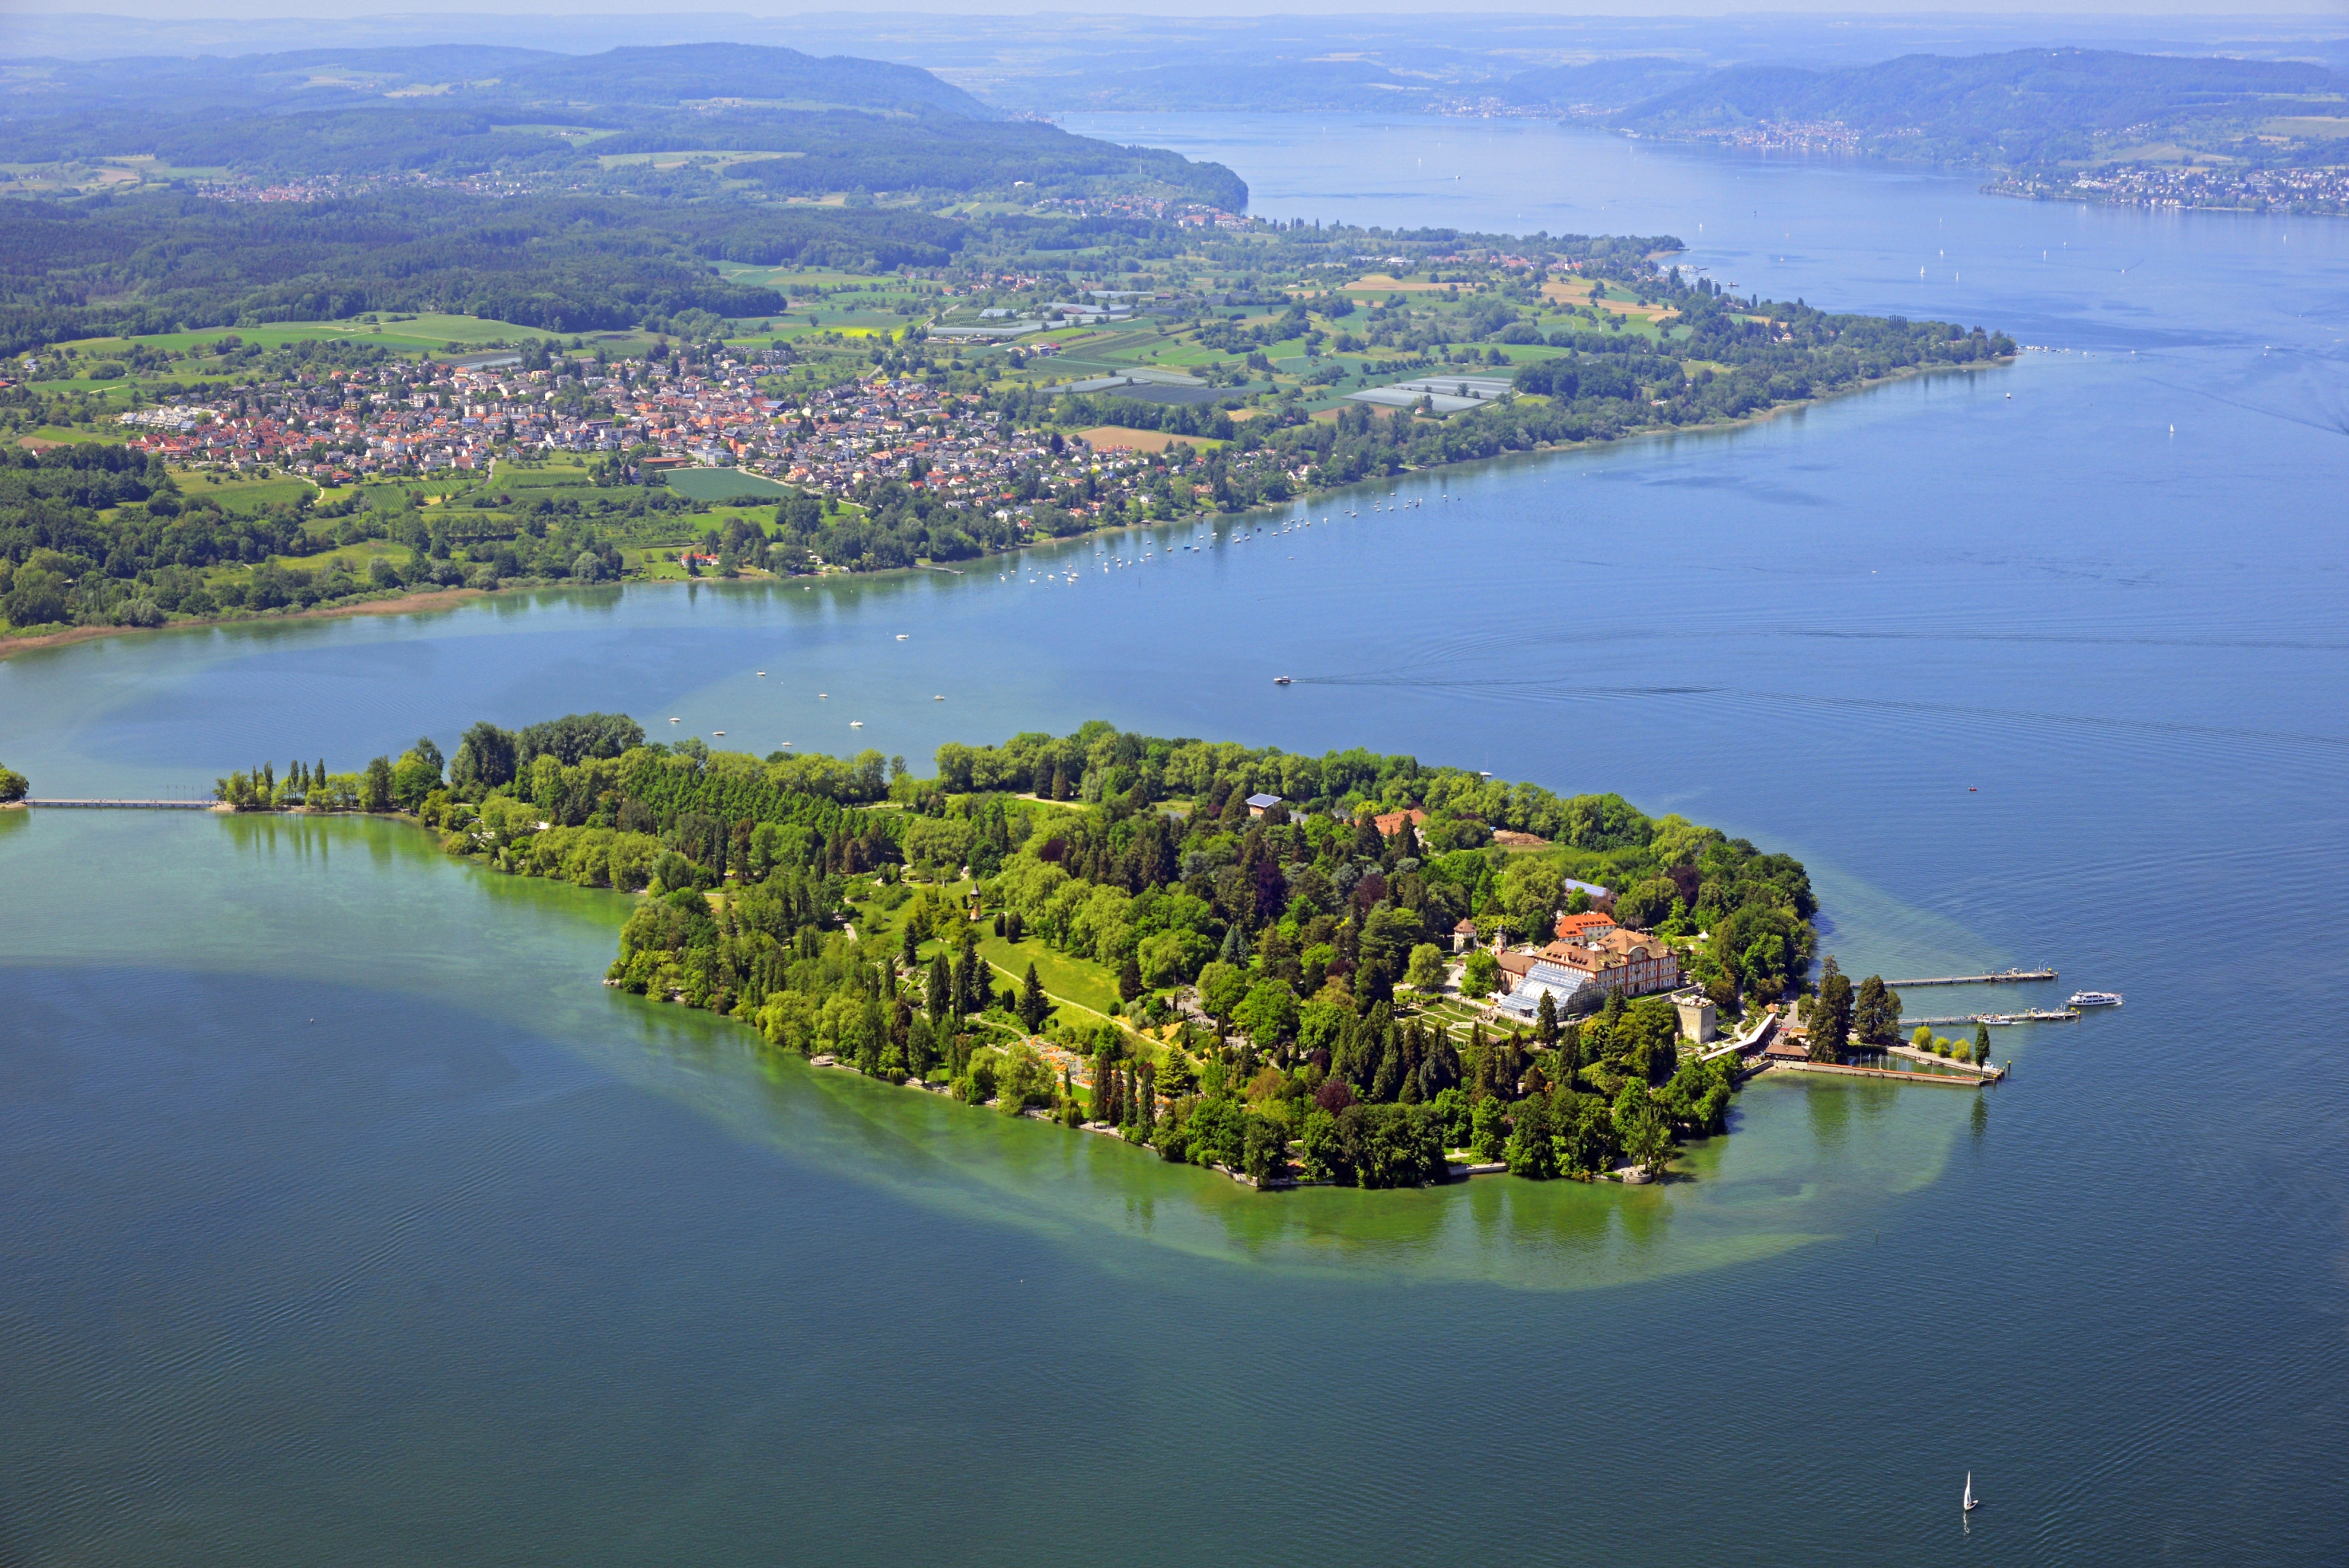 If there was a heaven on Earth for scientists, then it would be found in Bavaria in the beautiful town of Lindau. And if motivation on how to effect social change could be bottled up in one location, then it would be on Mainau, the beautiful flower island of the Bernadotte family. Picture: Insel Mainau/Peter Allgaier.